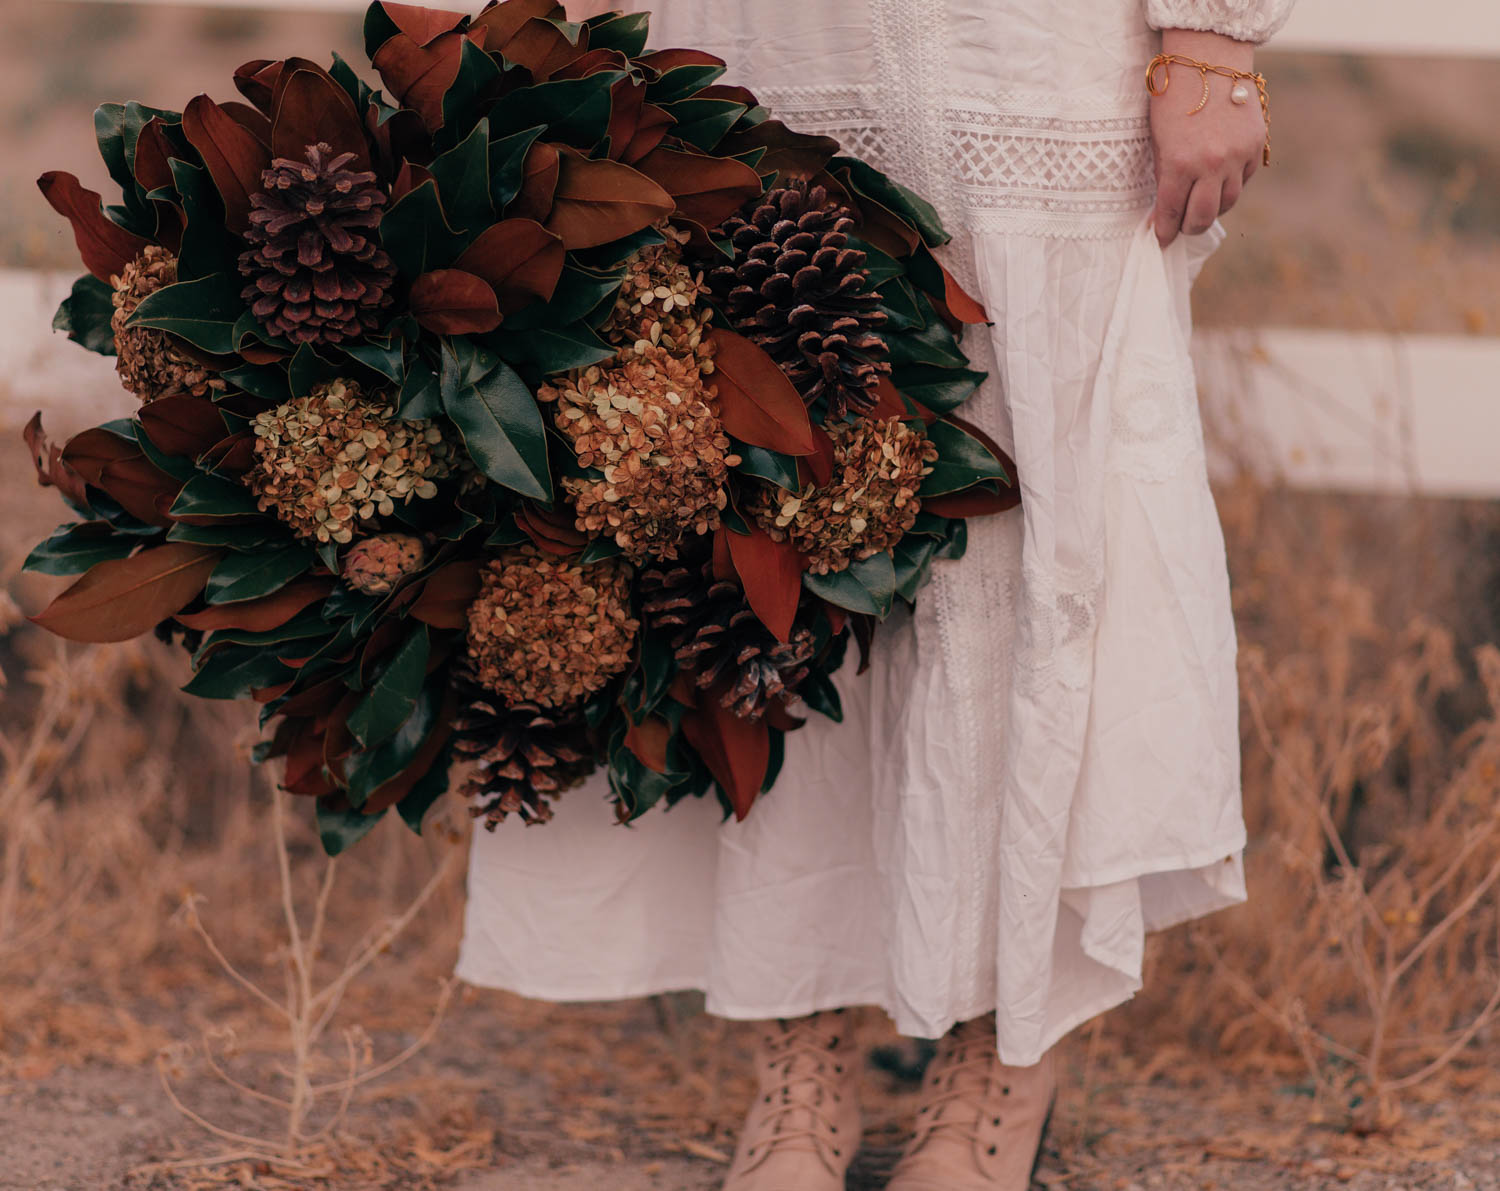 Feminine Fashion Blogger Elizabeth Hugen of Lizzie in Lace shares her Fall 2021 Bucket List & Intentions along with a gorgeous fall wreath from Weston Farms